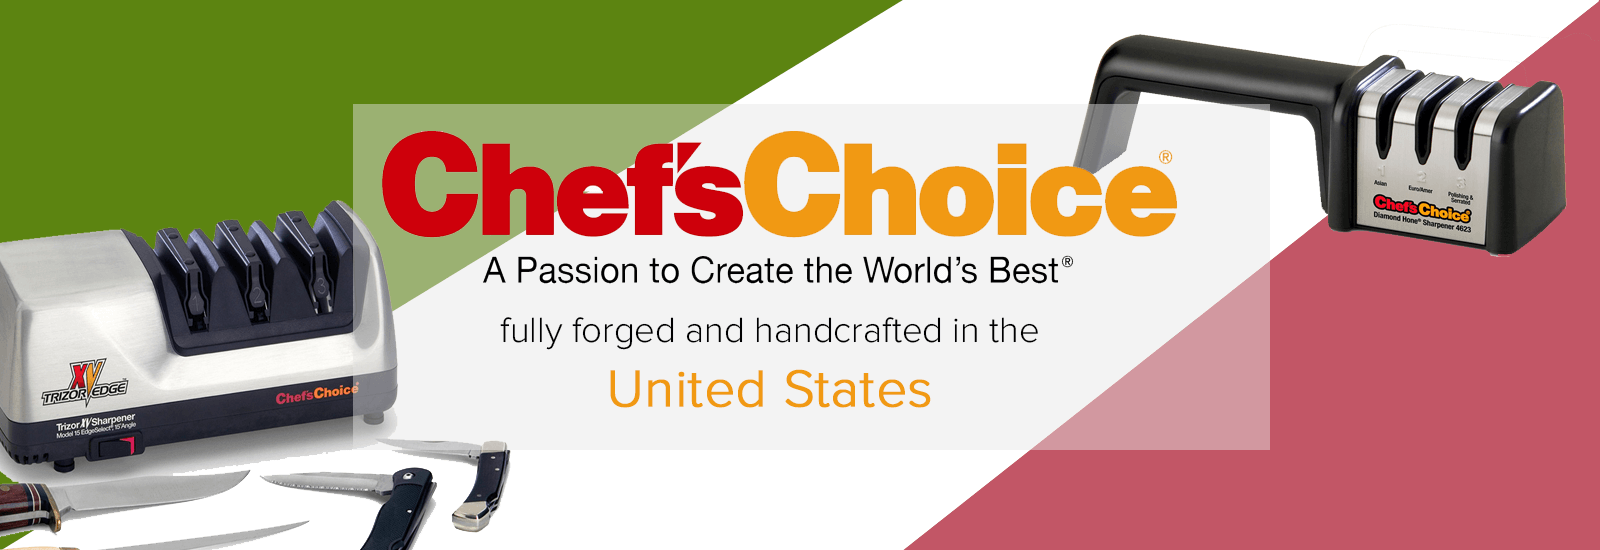 chef's Choice MADE IN USA